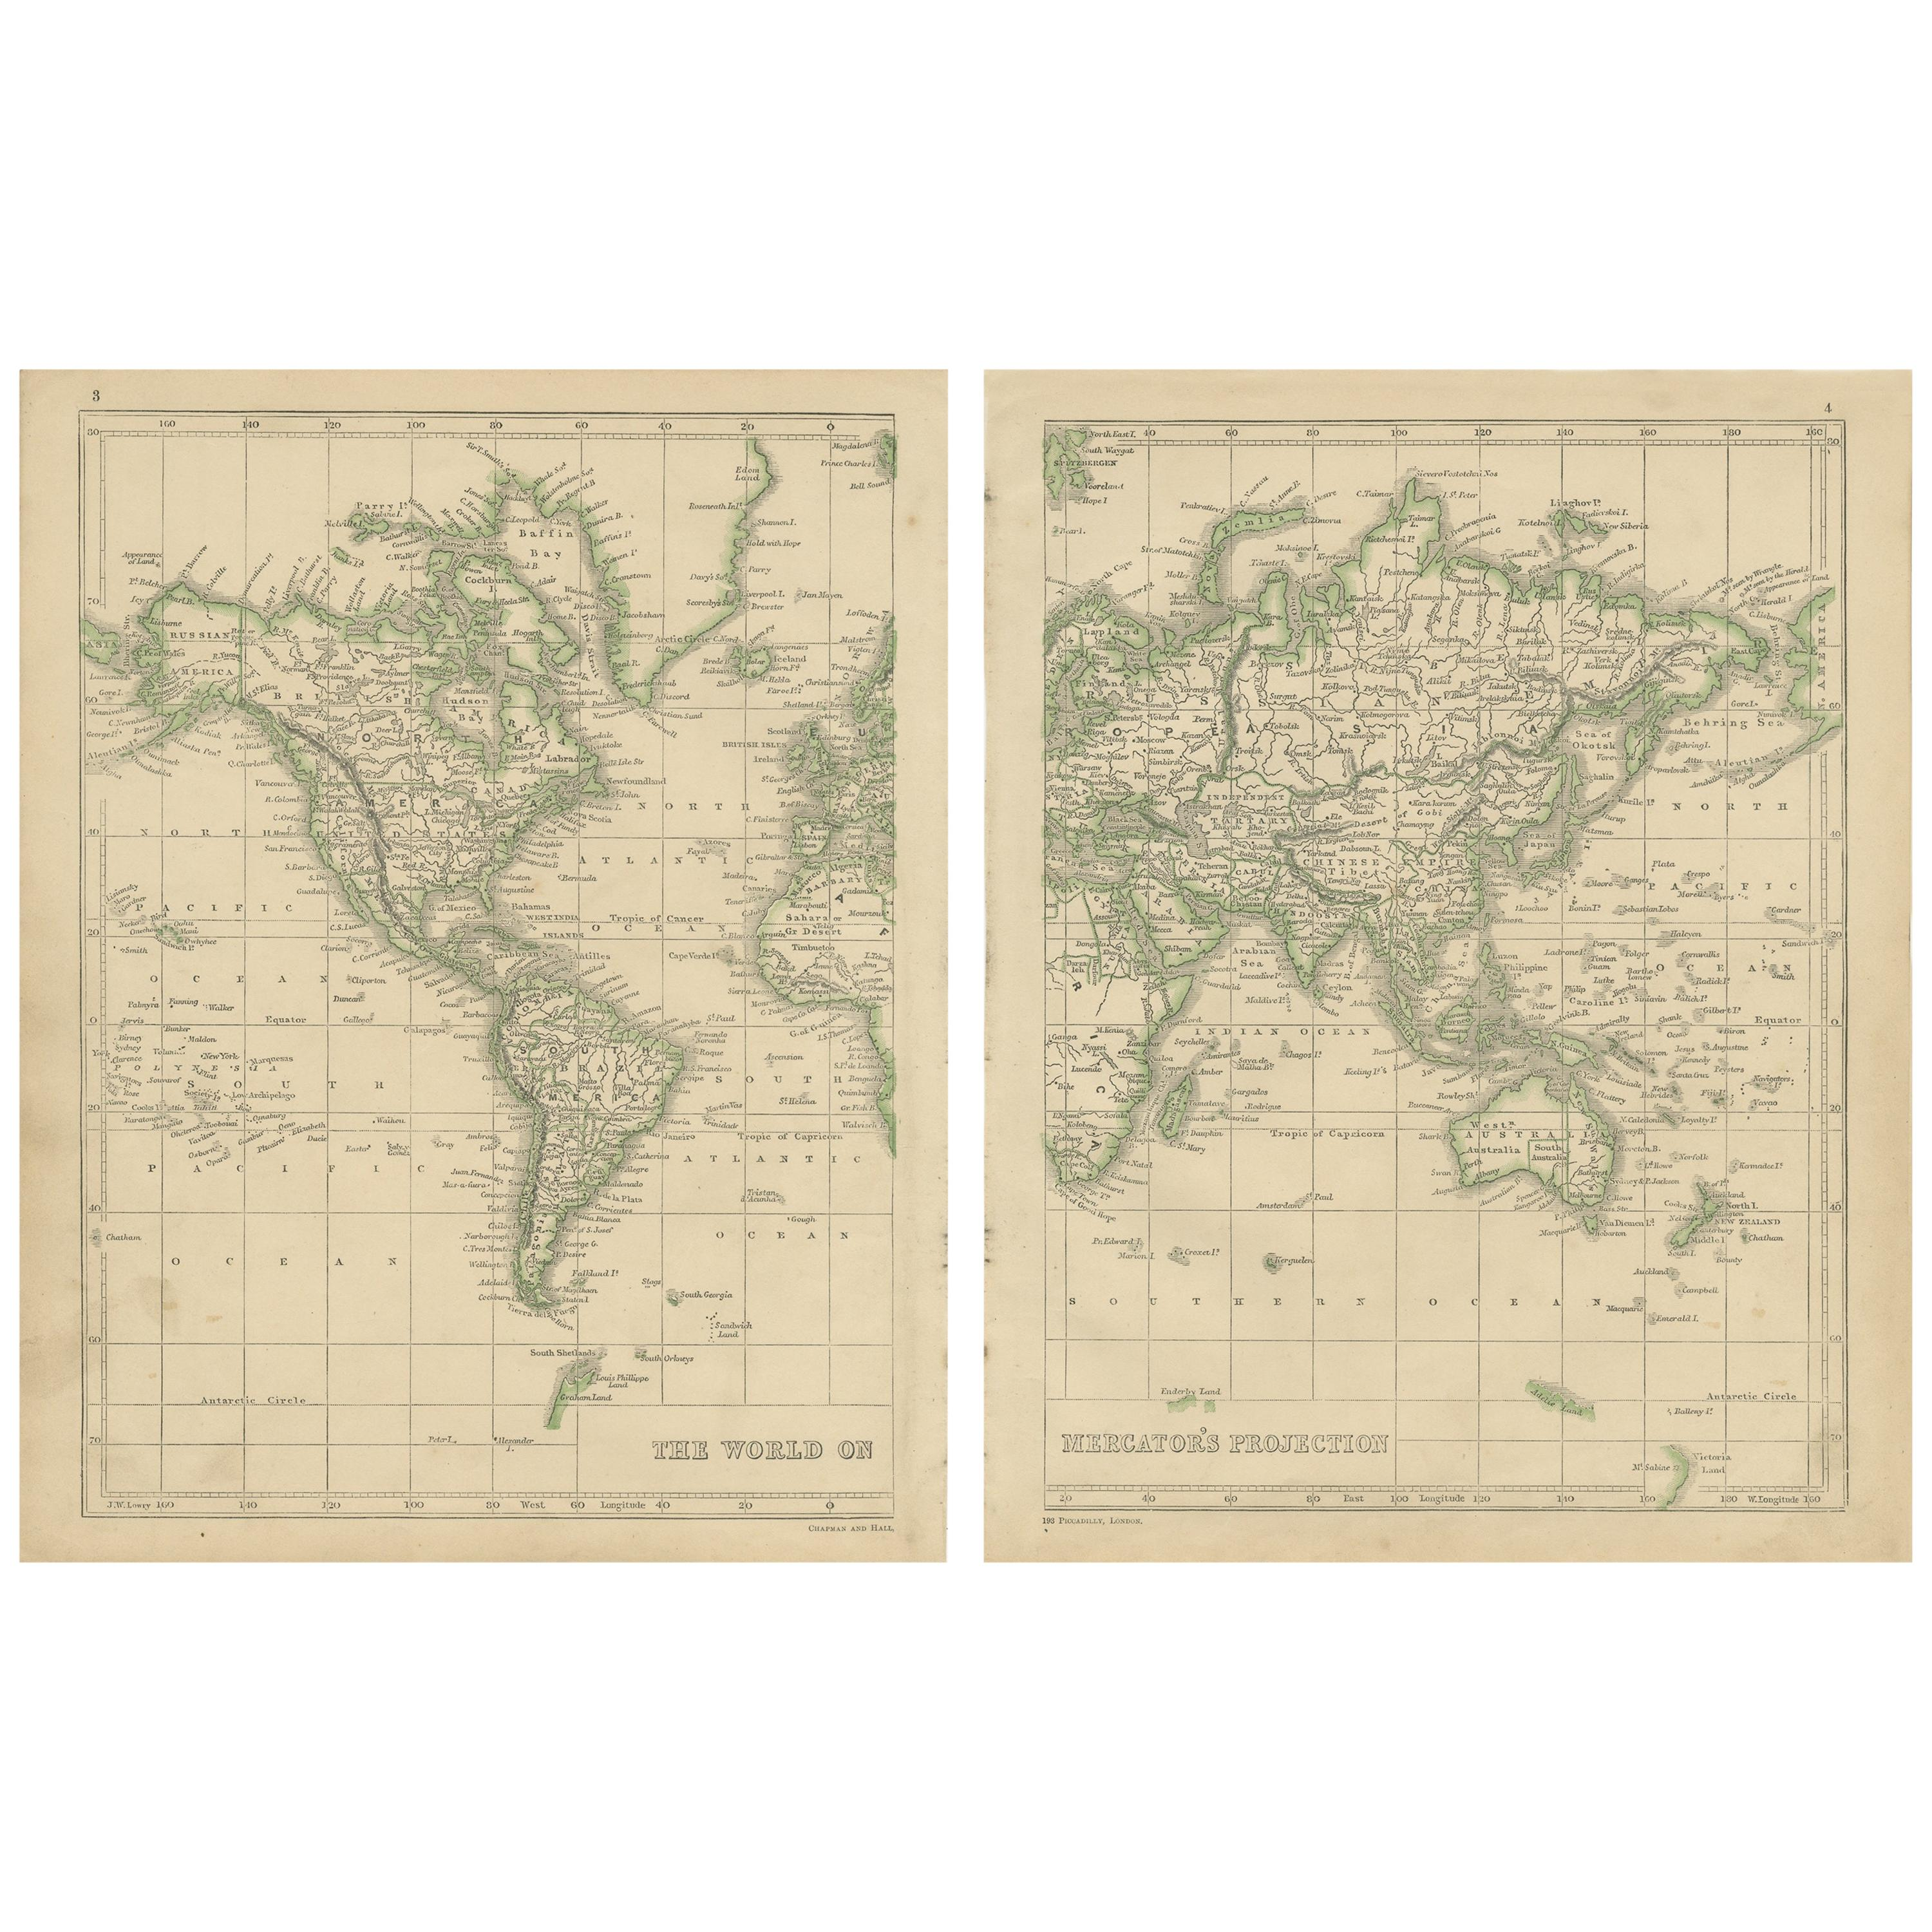 Antique Map of the World by Lowry, 1852